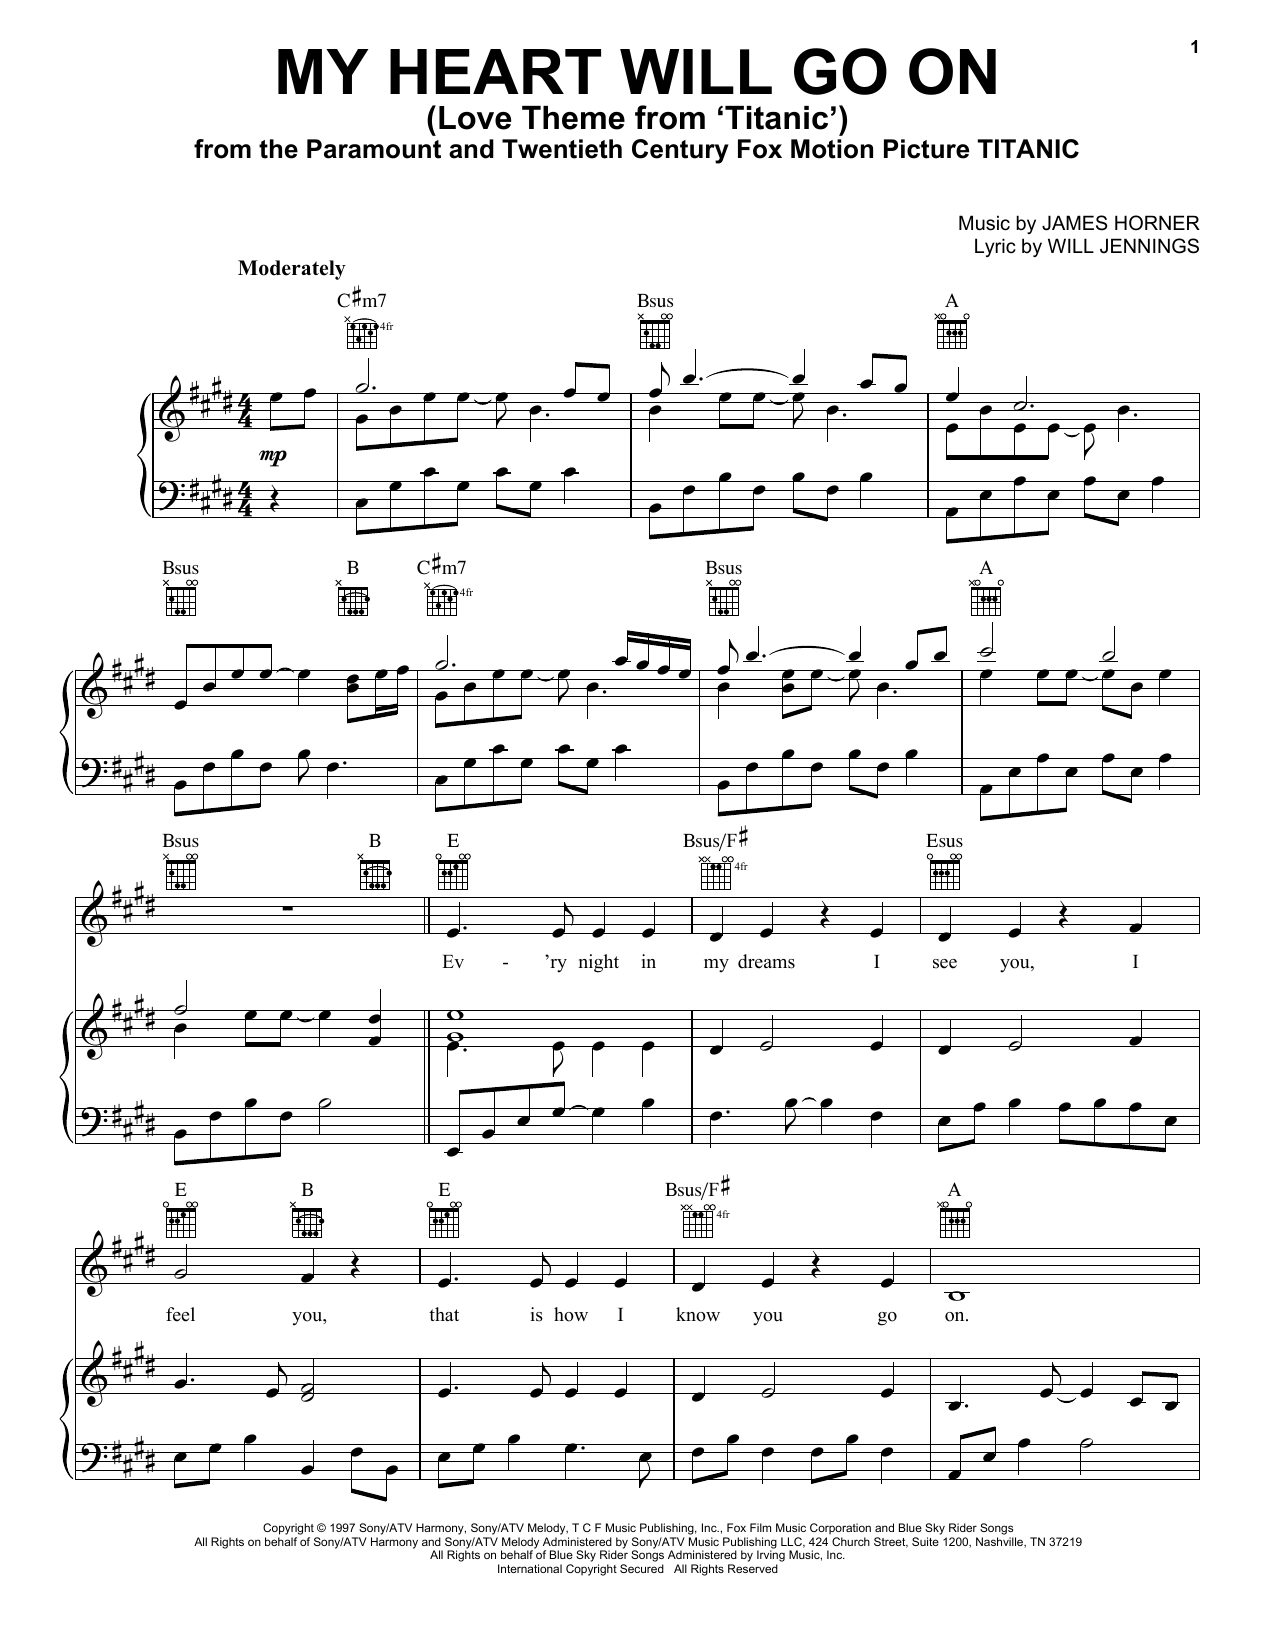 Celine Dion My Heart Will Go On (Love Theme From 'Titanic') sheet music notes and chords. Download Printable PDF.